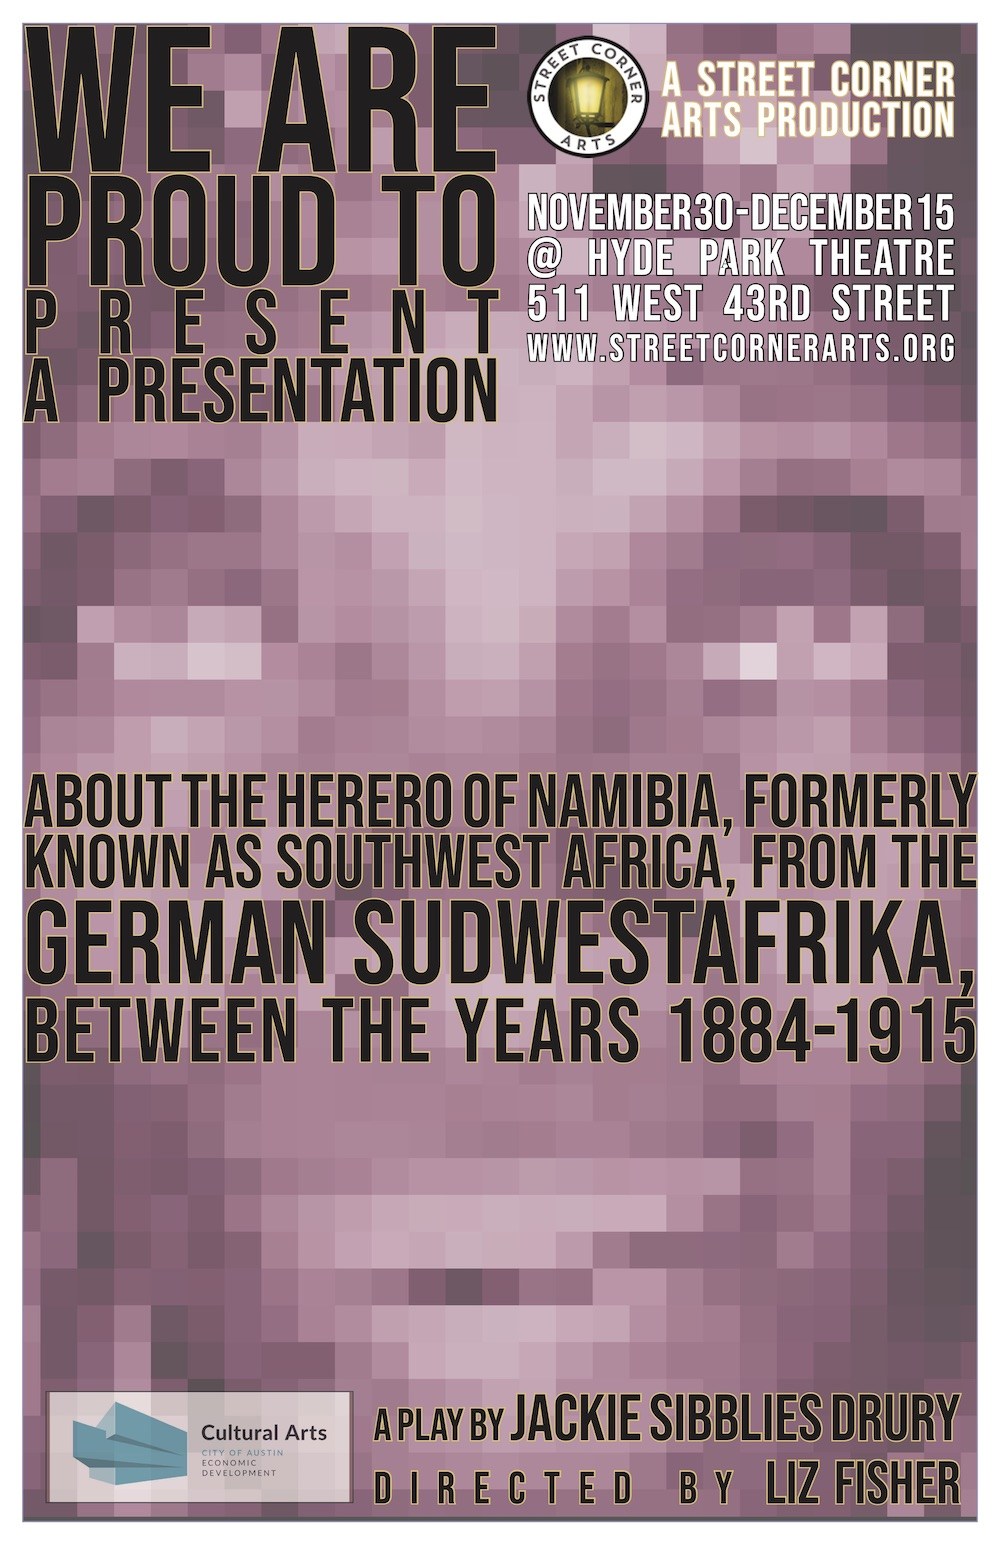 We Are Proud to Present a Presentation About the Herero of Namibia. . . by Street Corner Arts